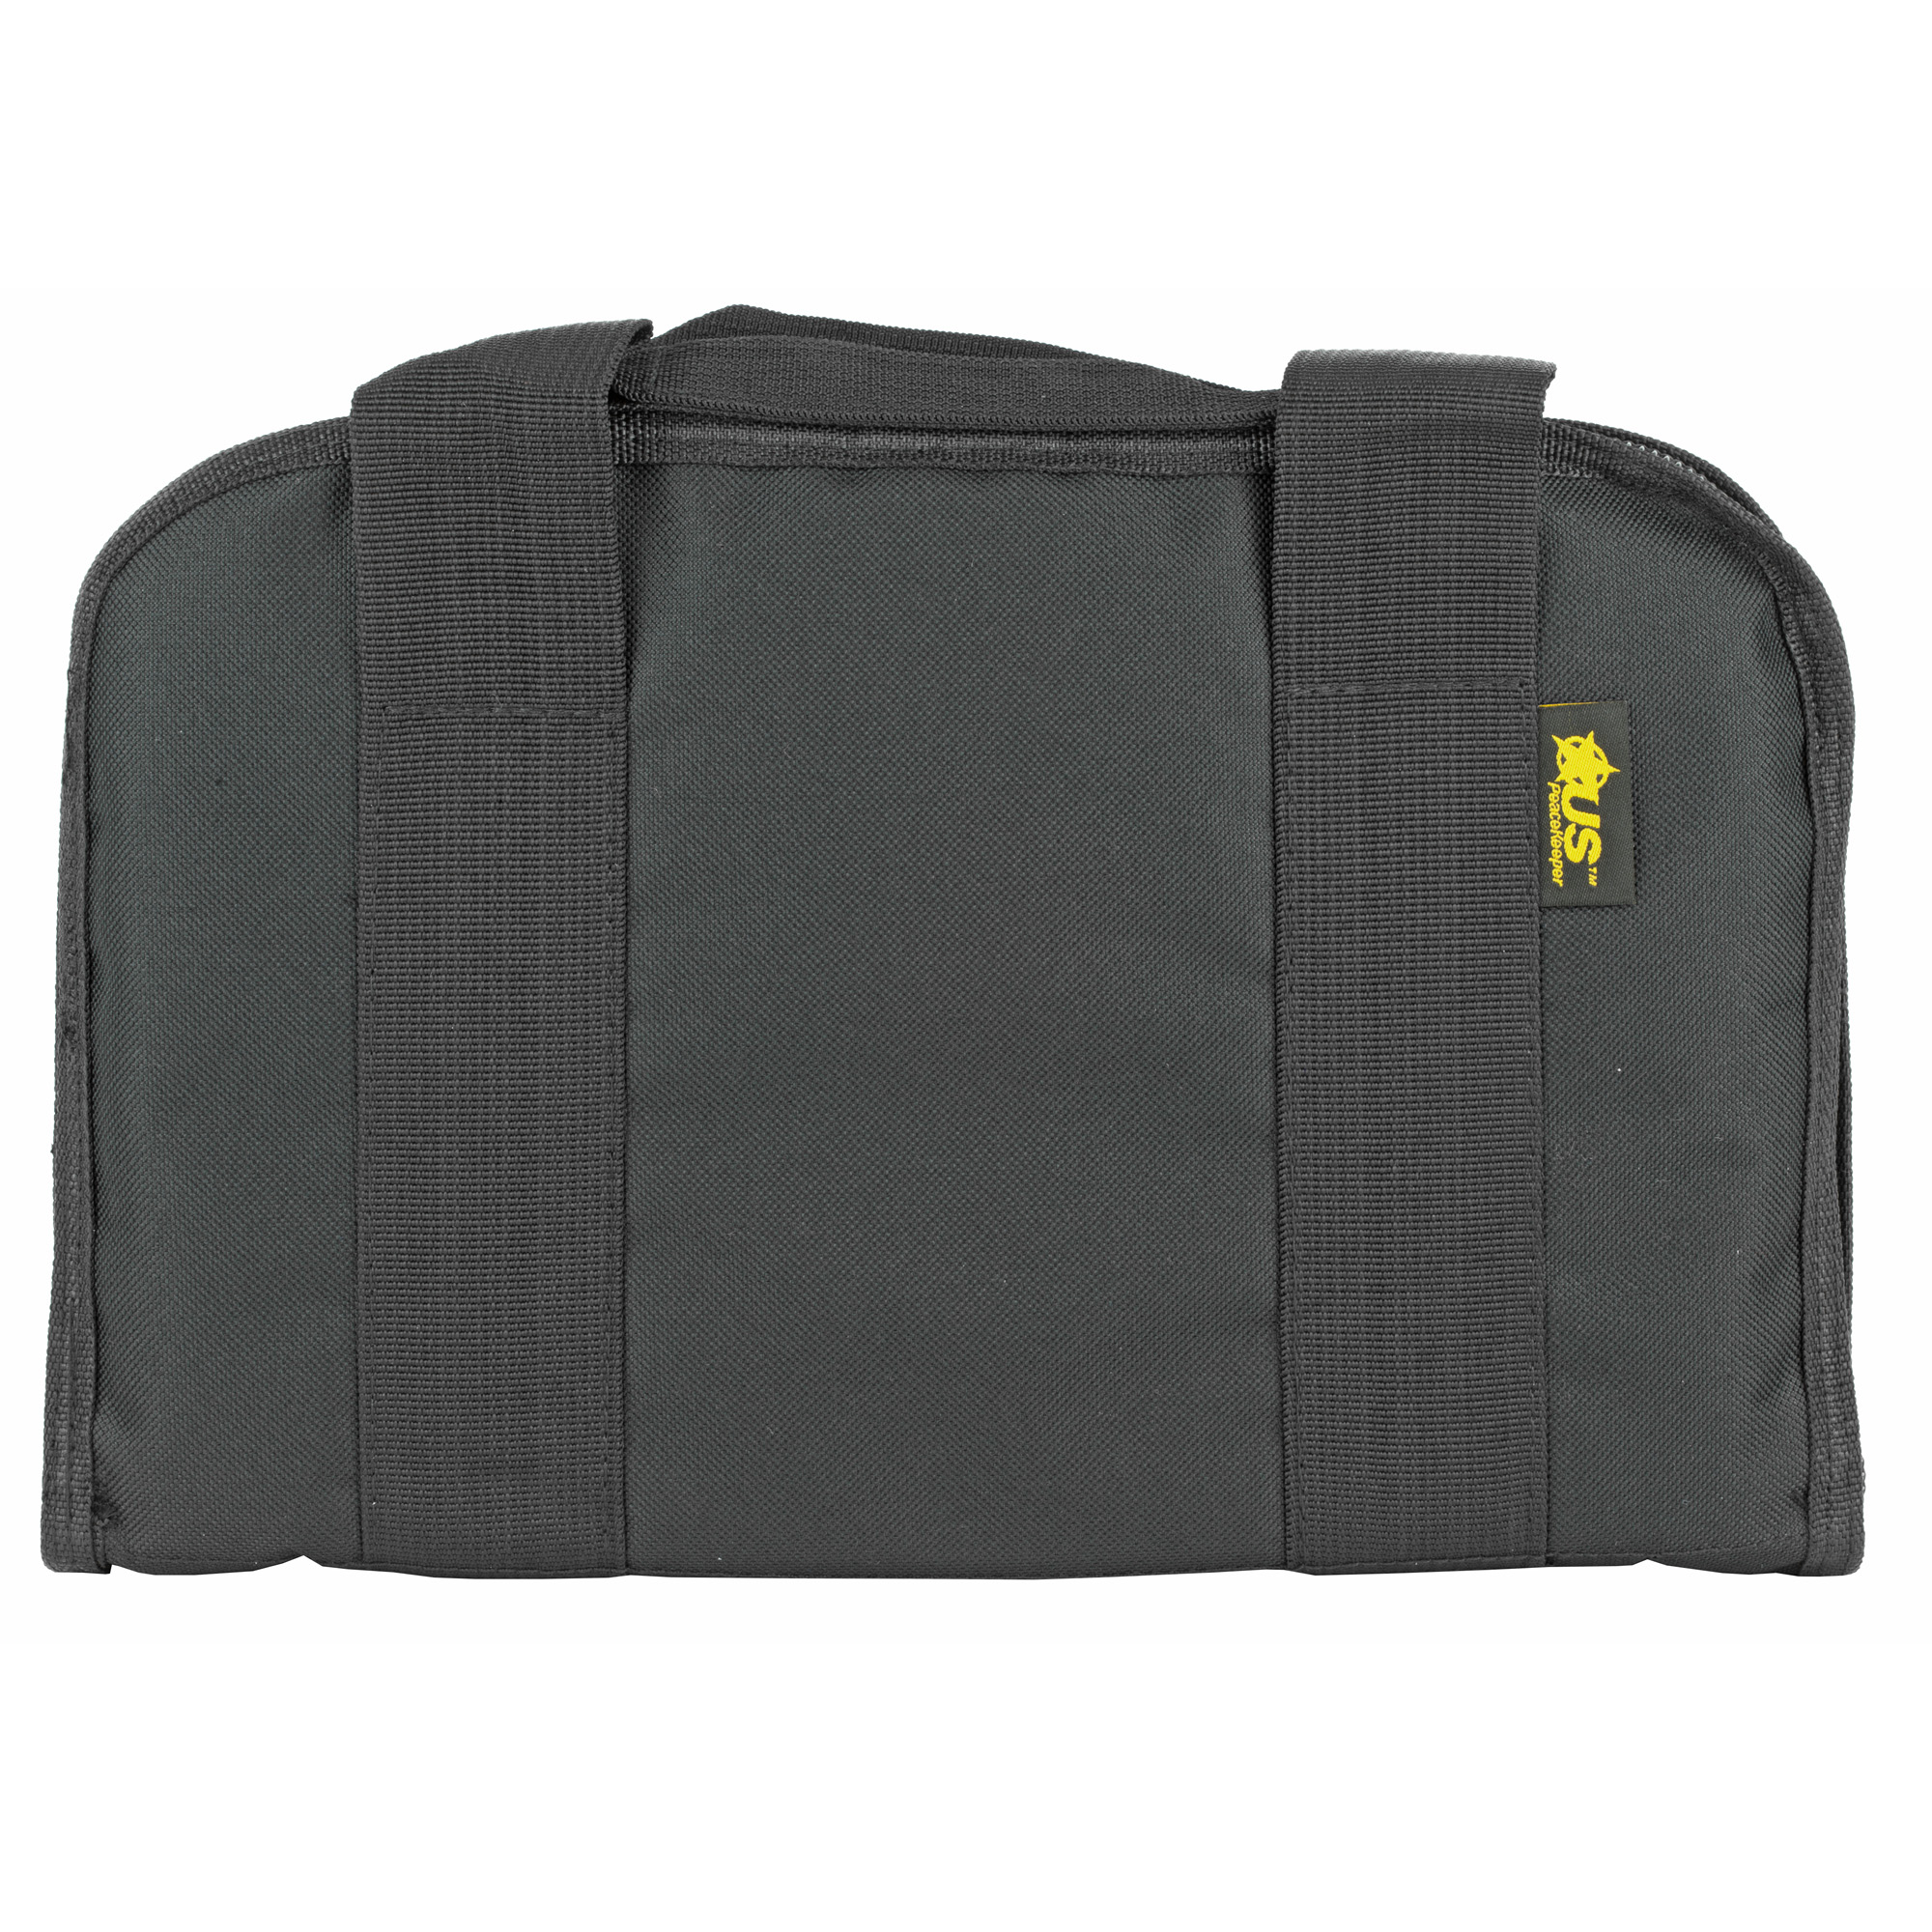 The US PeaceKeeper Attach Case organizes and protects your handgun and up to five (5) spare magazines. It's slim design allows for easy storage in most safes while keeping your firearm protected and instantly ready for transport to the range.